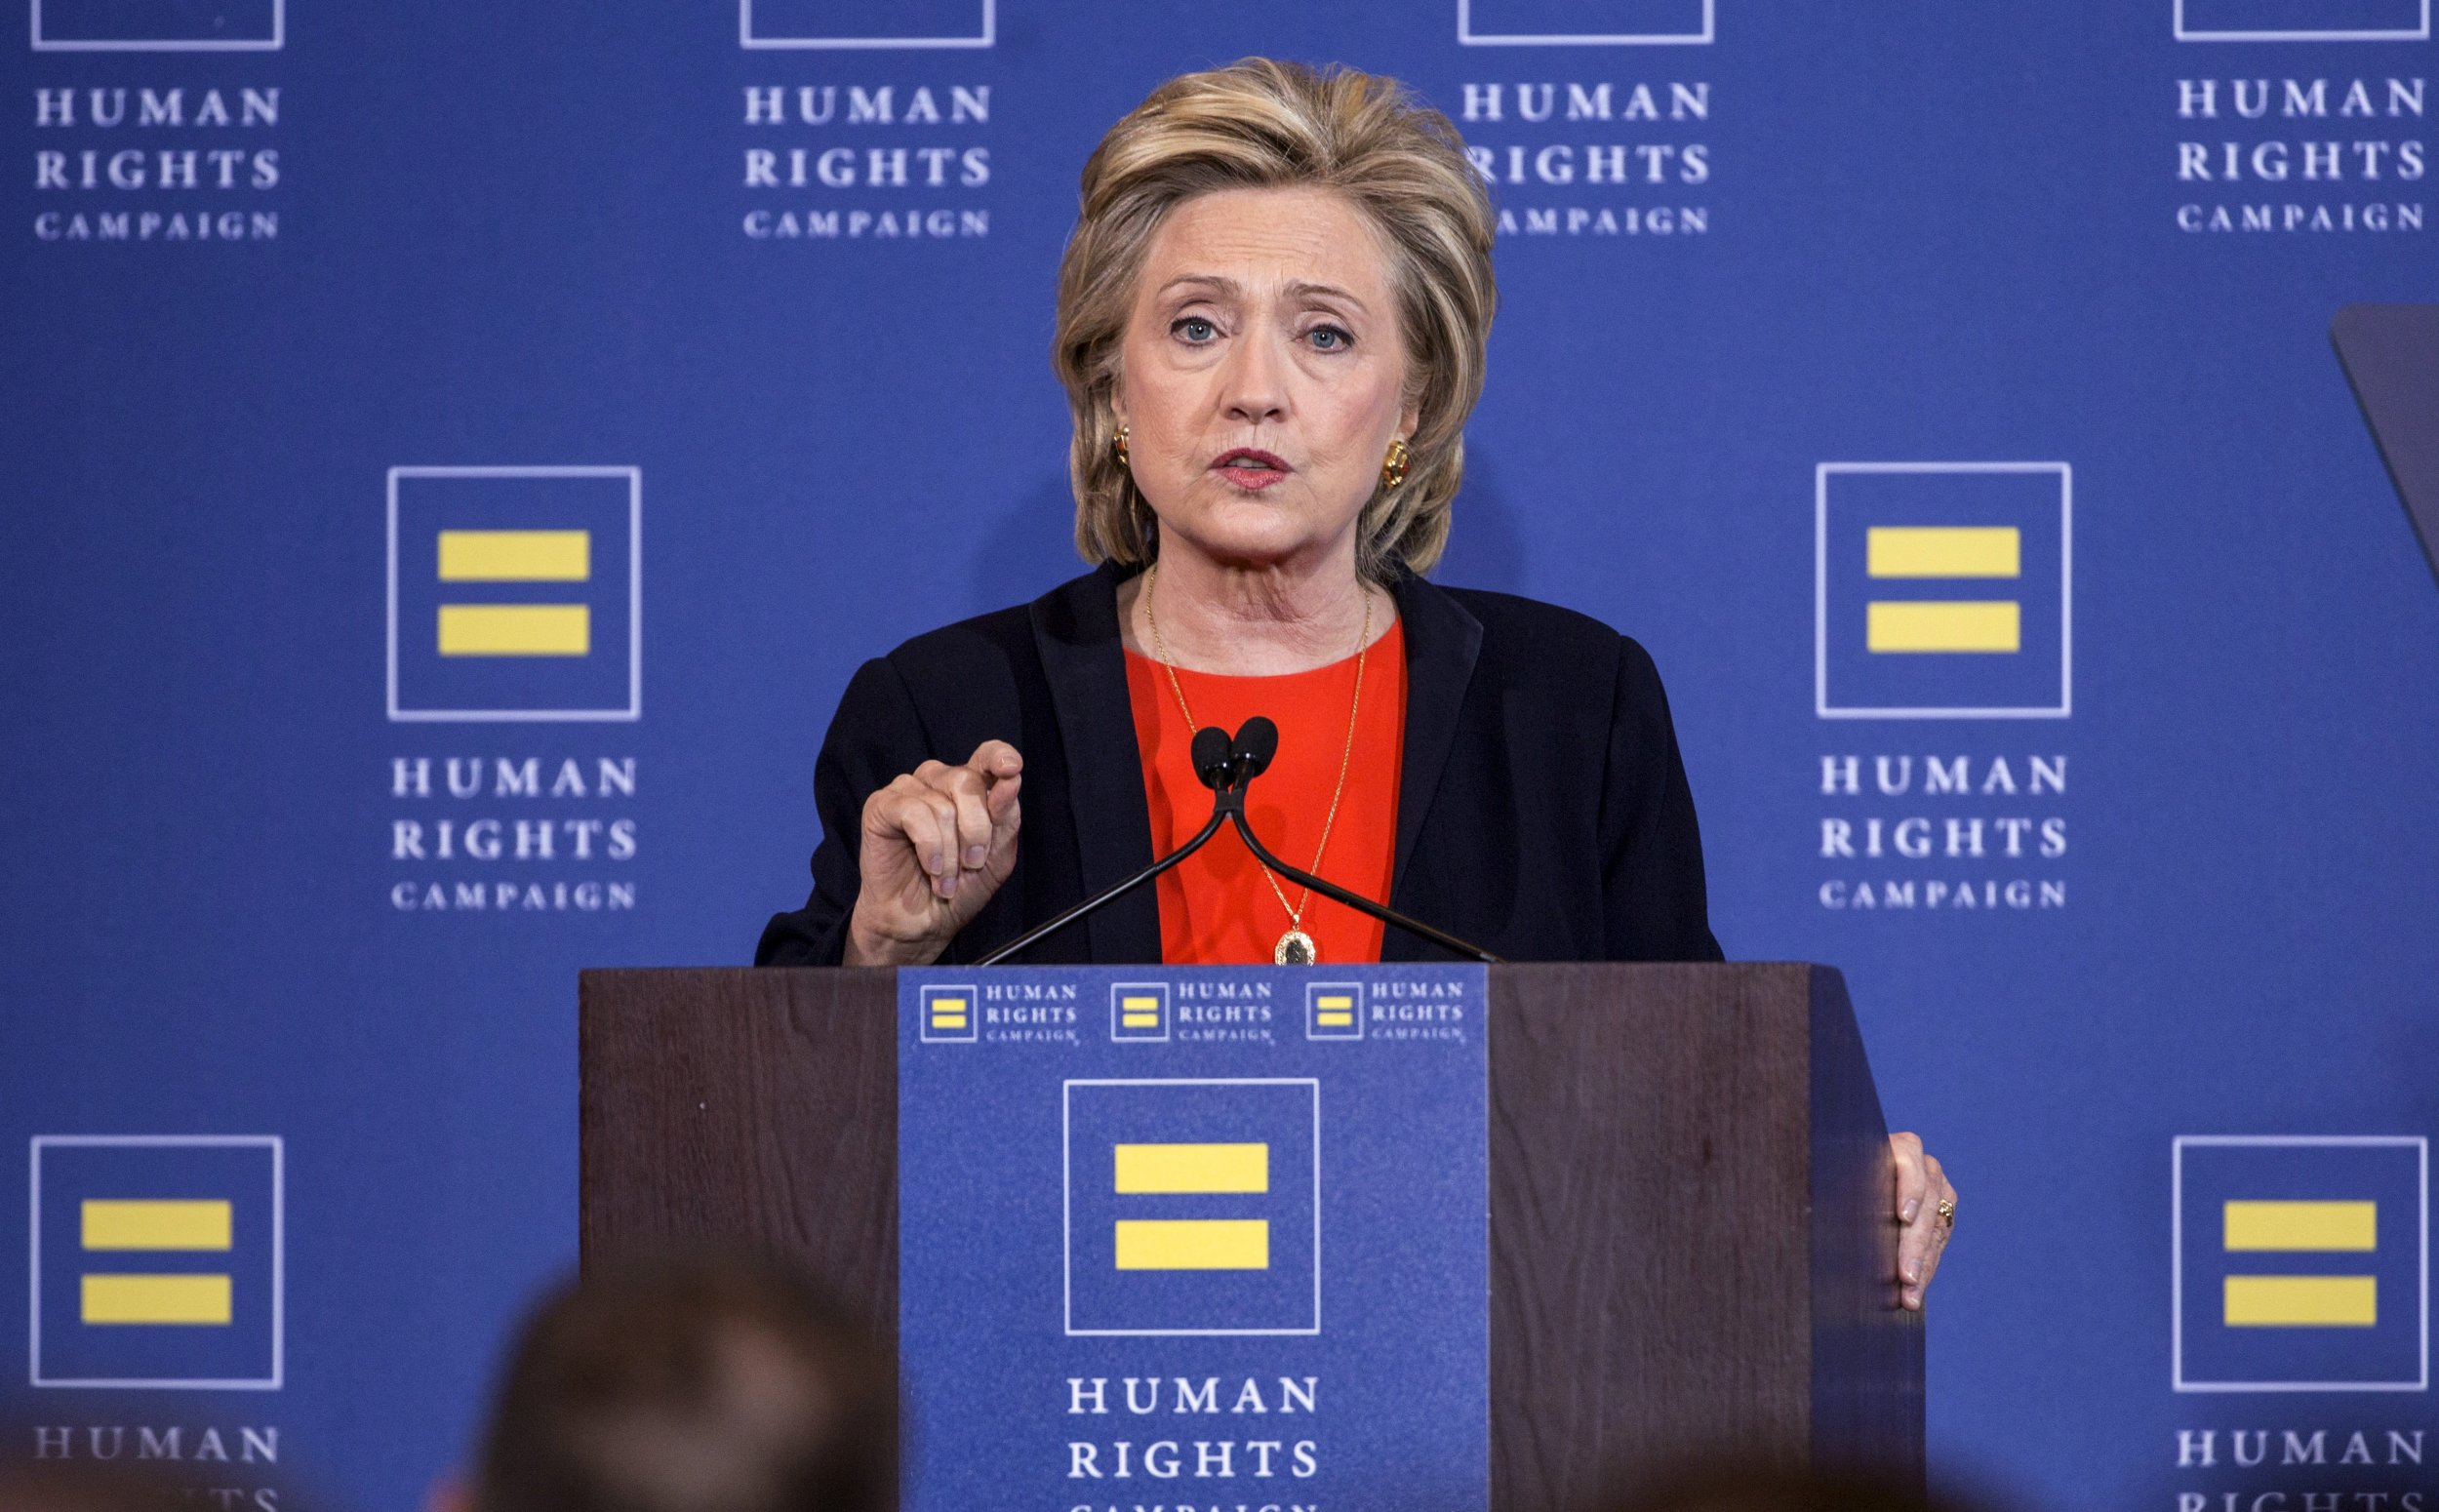 human rights campaign The human rights campaign (hrc) is a 501(c)(4) nonprofit organization that aims to affect policies concerning lesbian, gay, bisexual and transgender (lgbt) americans through advocacy and lobbying.